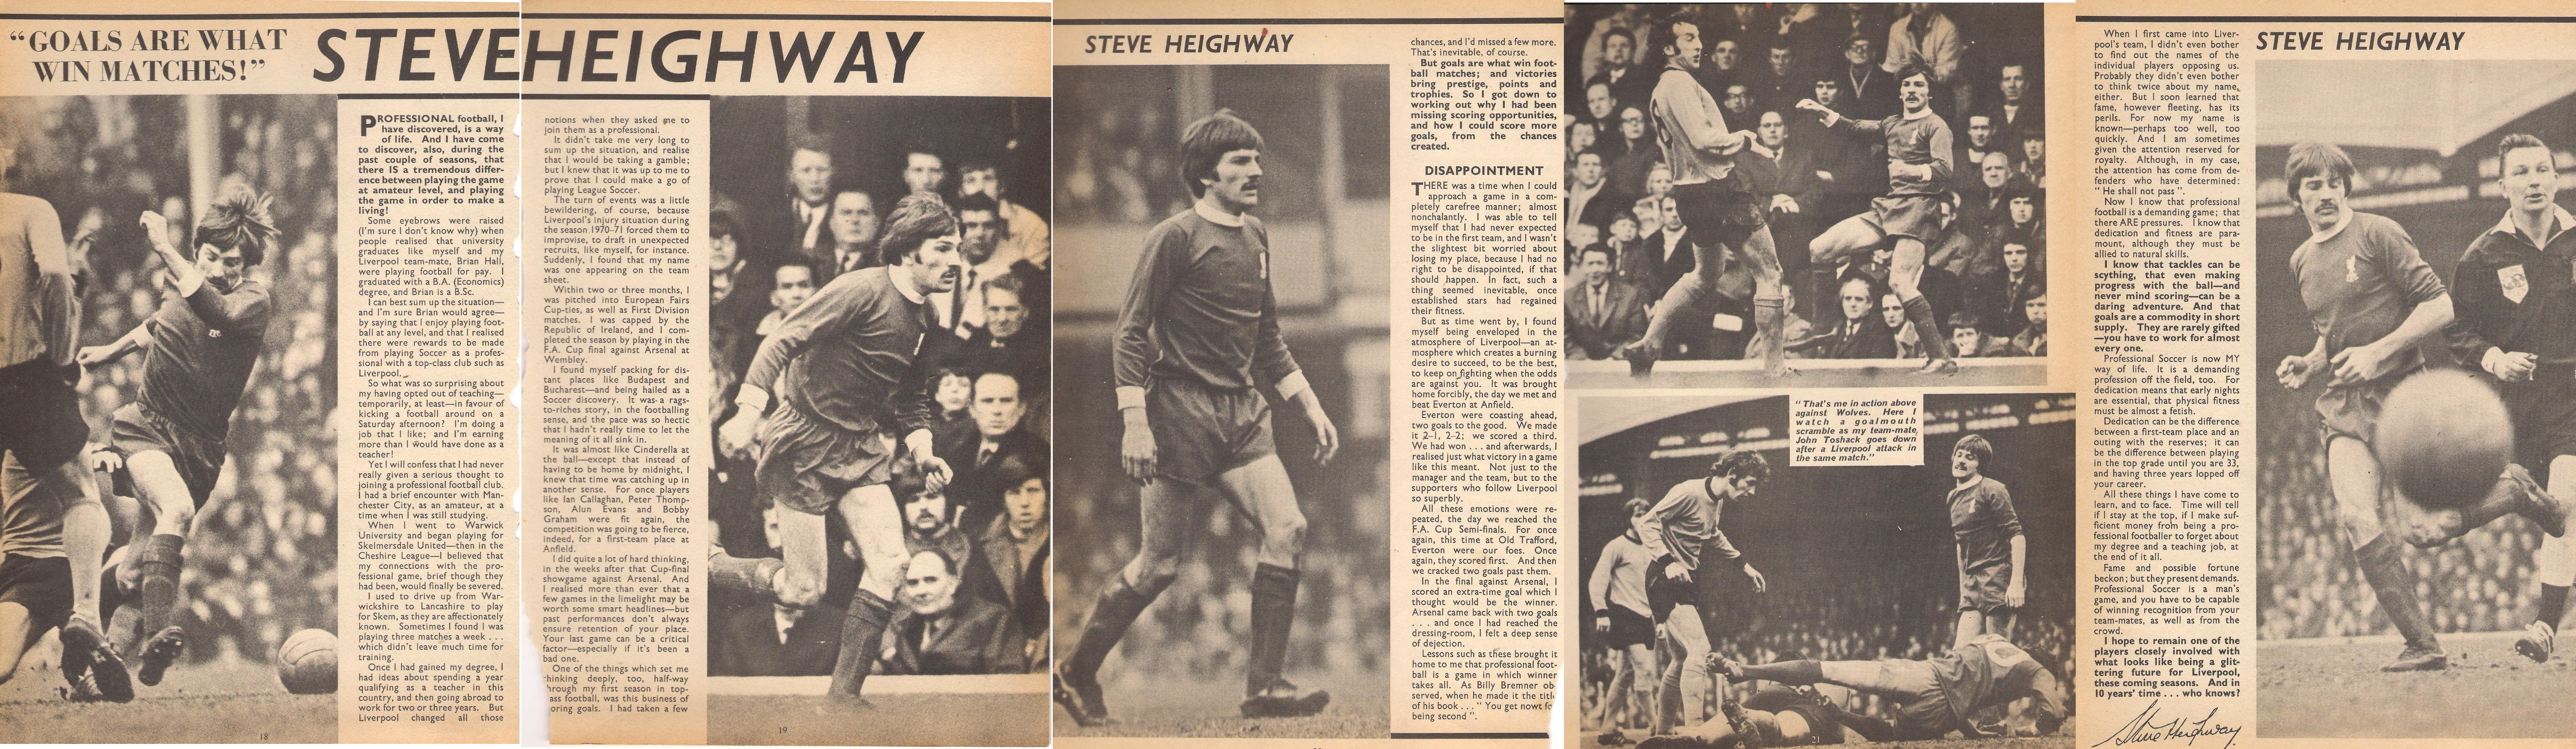 Heighway's career in the Roy of the Rovers annual 1973